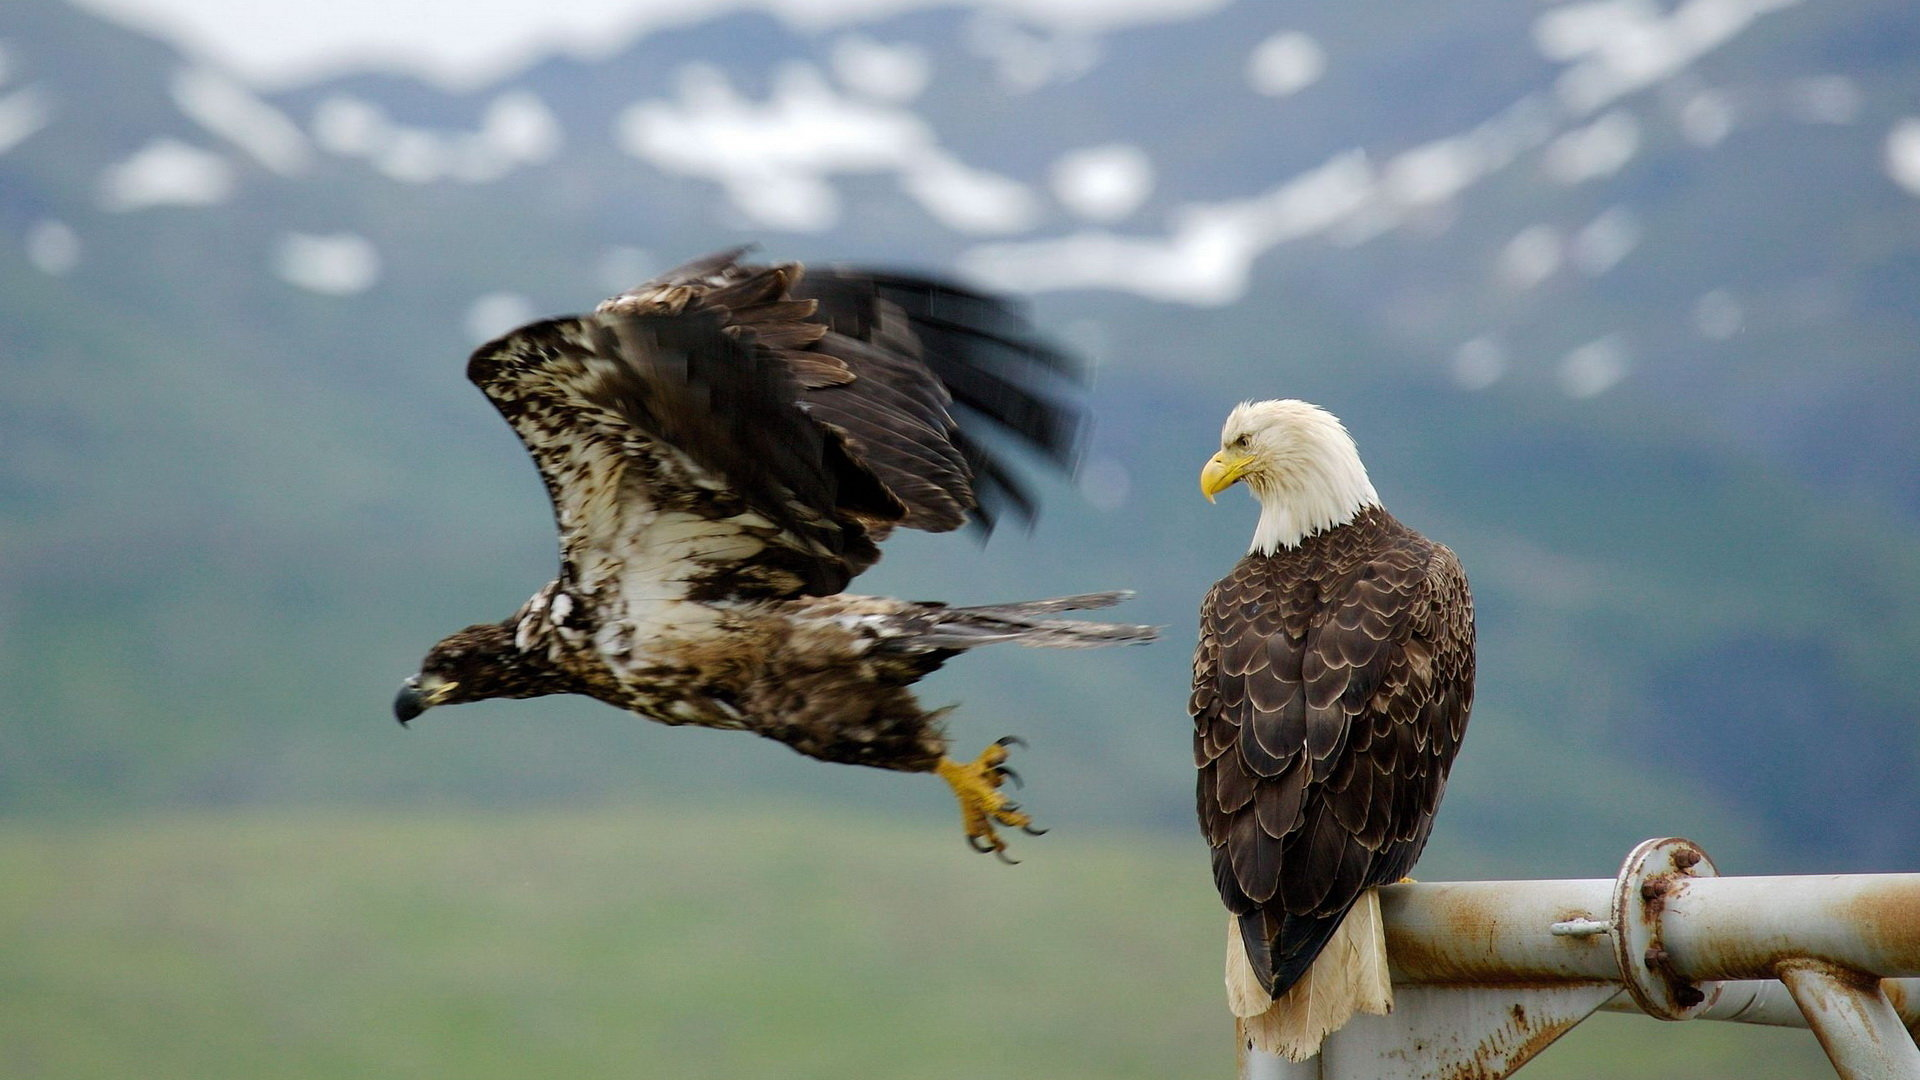 Download full hd American Bald Eagle PC background ID:68768 for free